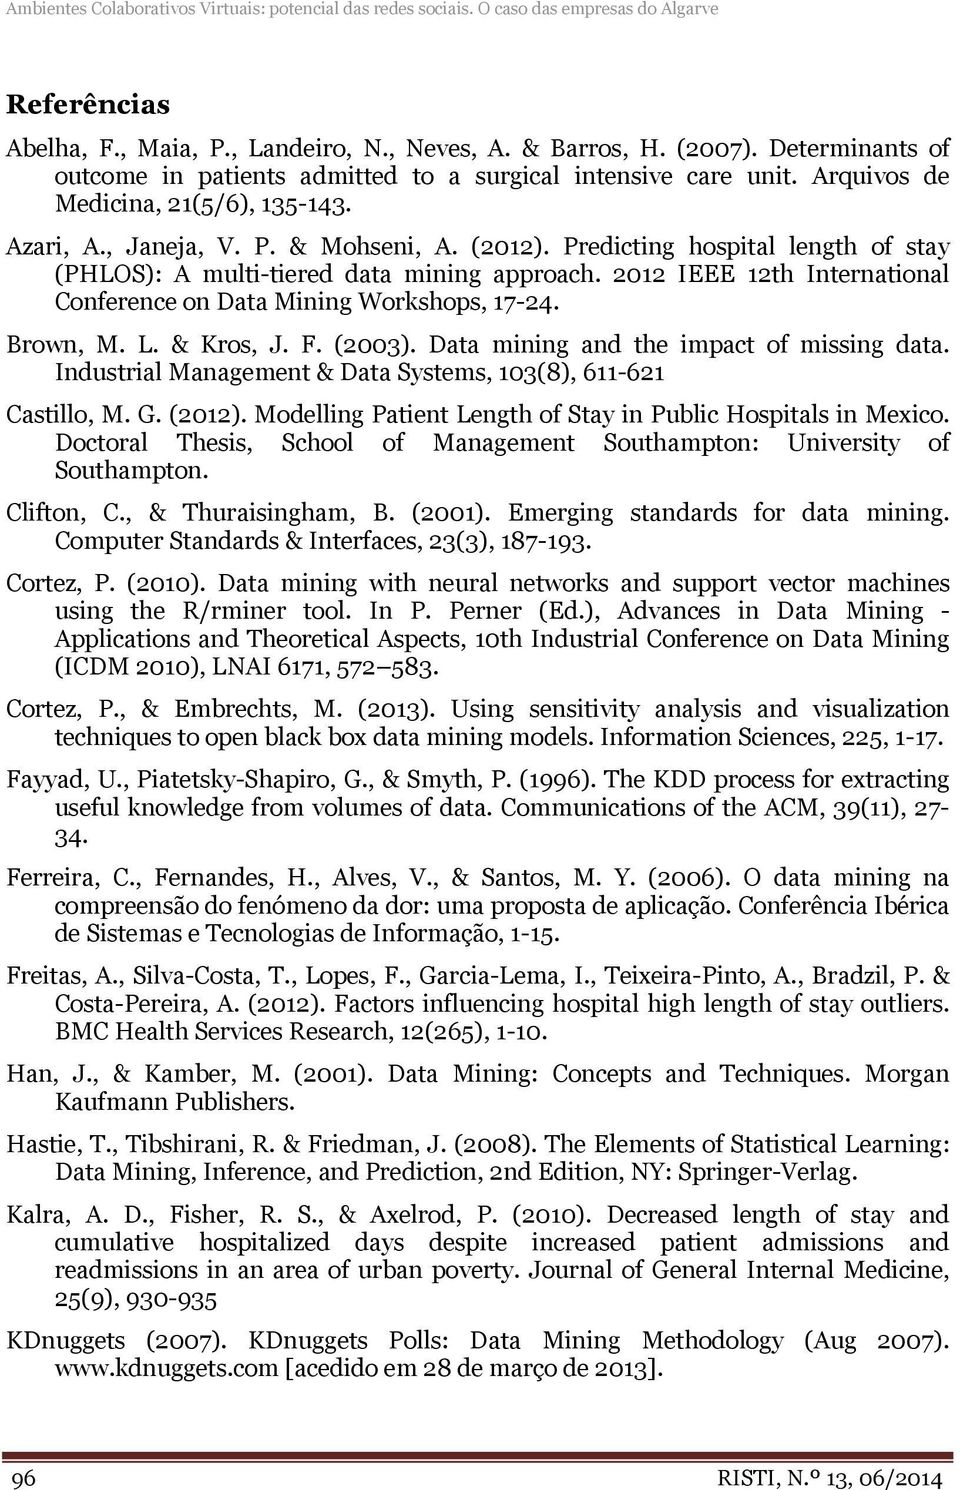 Predicting hospital length of stay (PHLOS): A multi-tiered data mining approach. 2012 IEEE 12th International Conference on Data Mining Workshops, 17-24. Brown, M. L. & Kros, J. F. (2003).